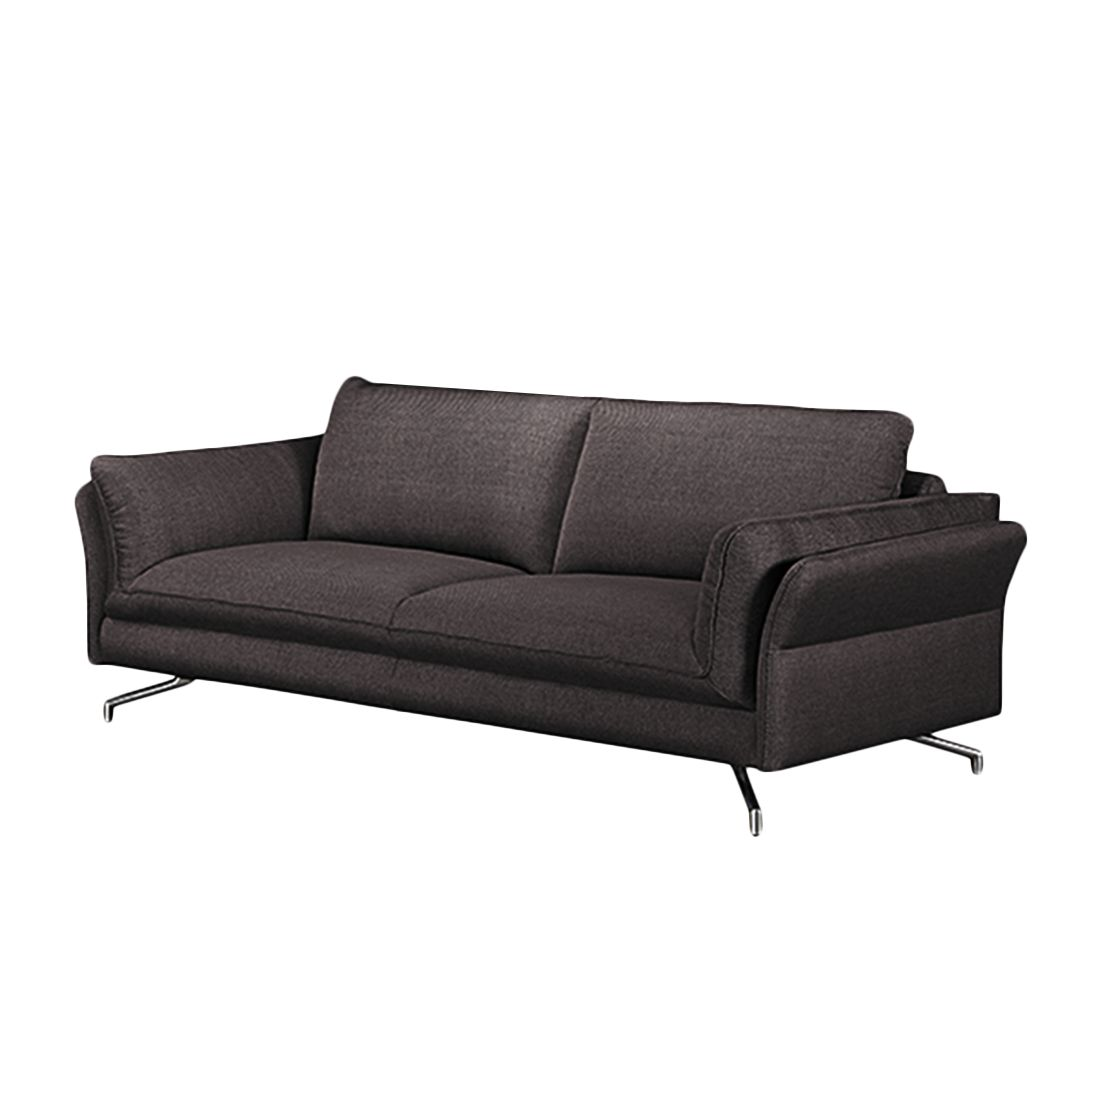 sofa enrico 3 sitzer strukturstoff braun mit 1 kopfst tze loftscape online bestellen. Black Bedroom Furniture Sets. Home Design Ideas